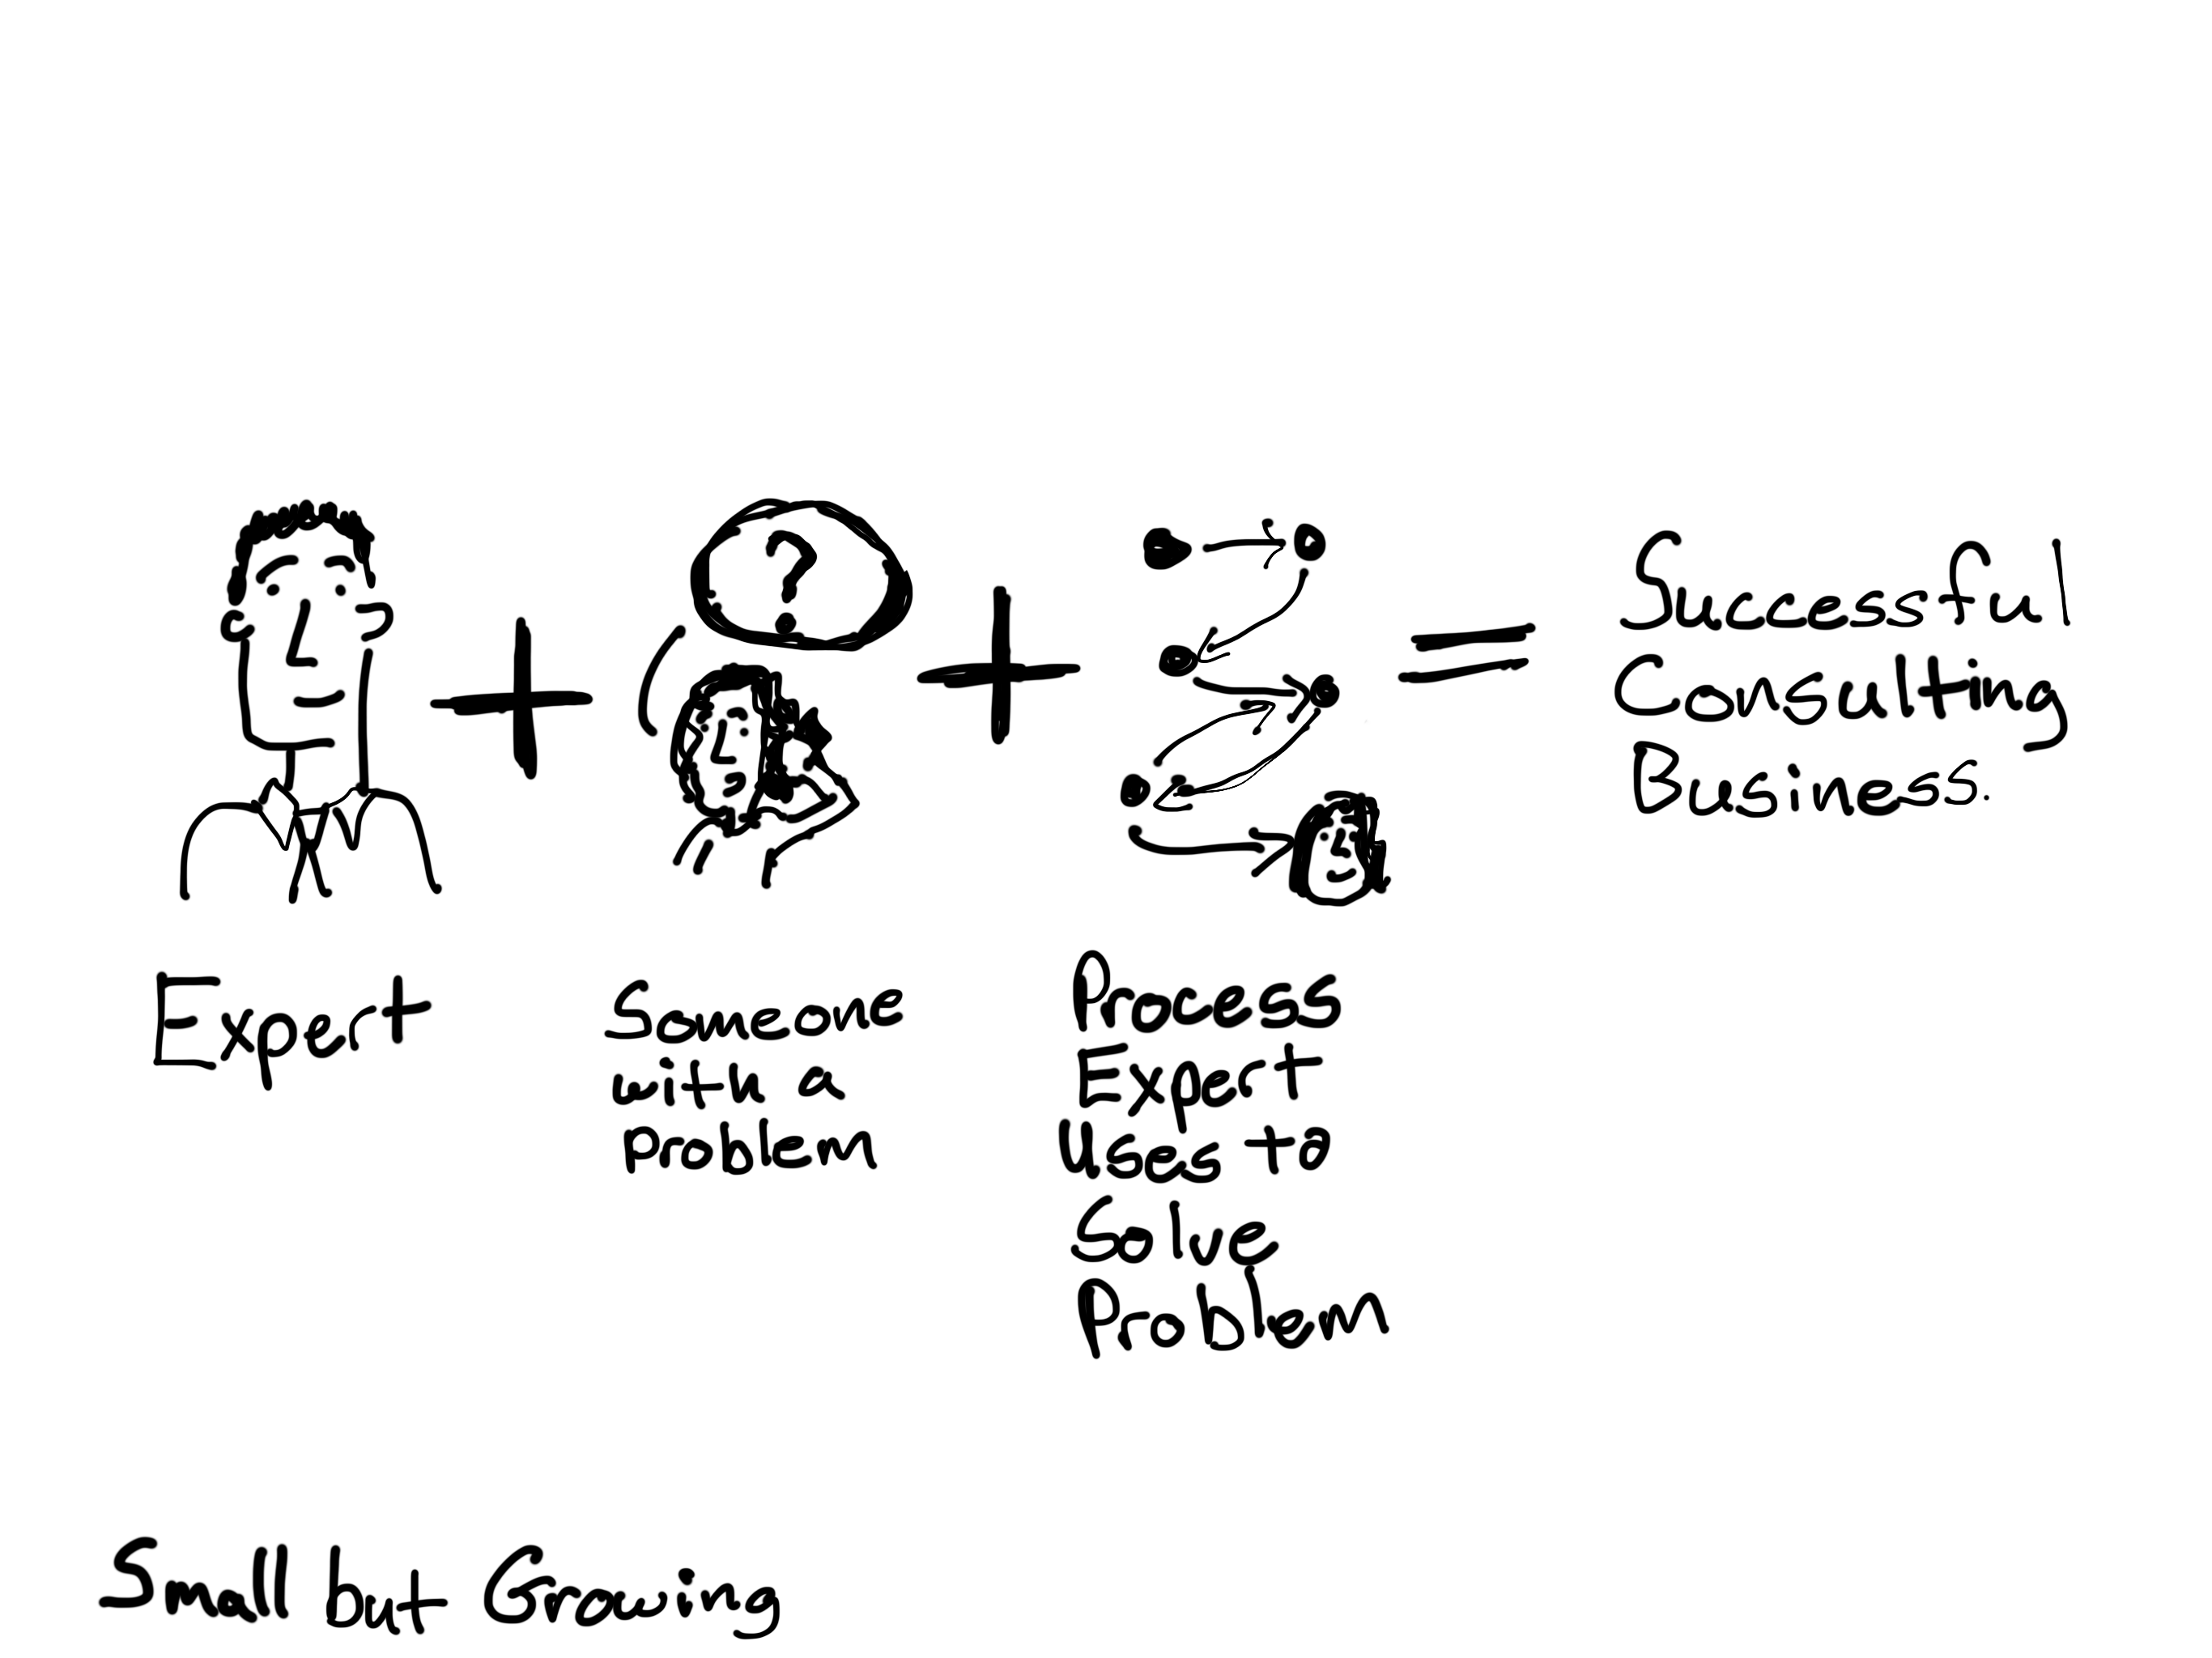 Successful consulting business cartoon by Chris lysy